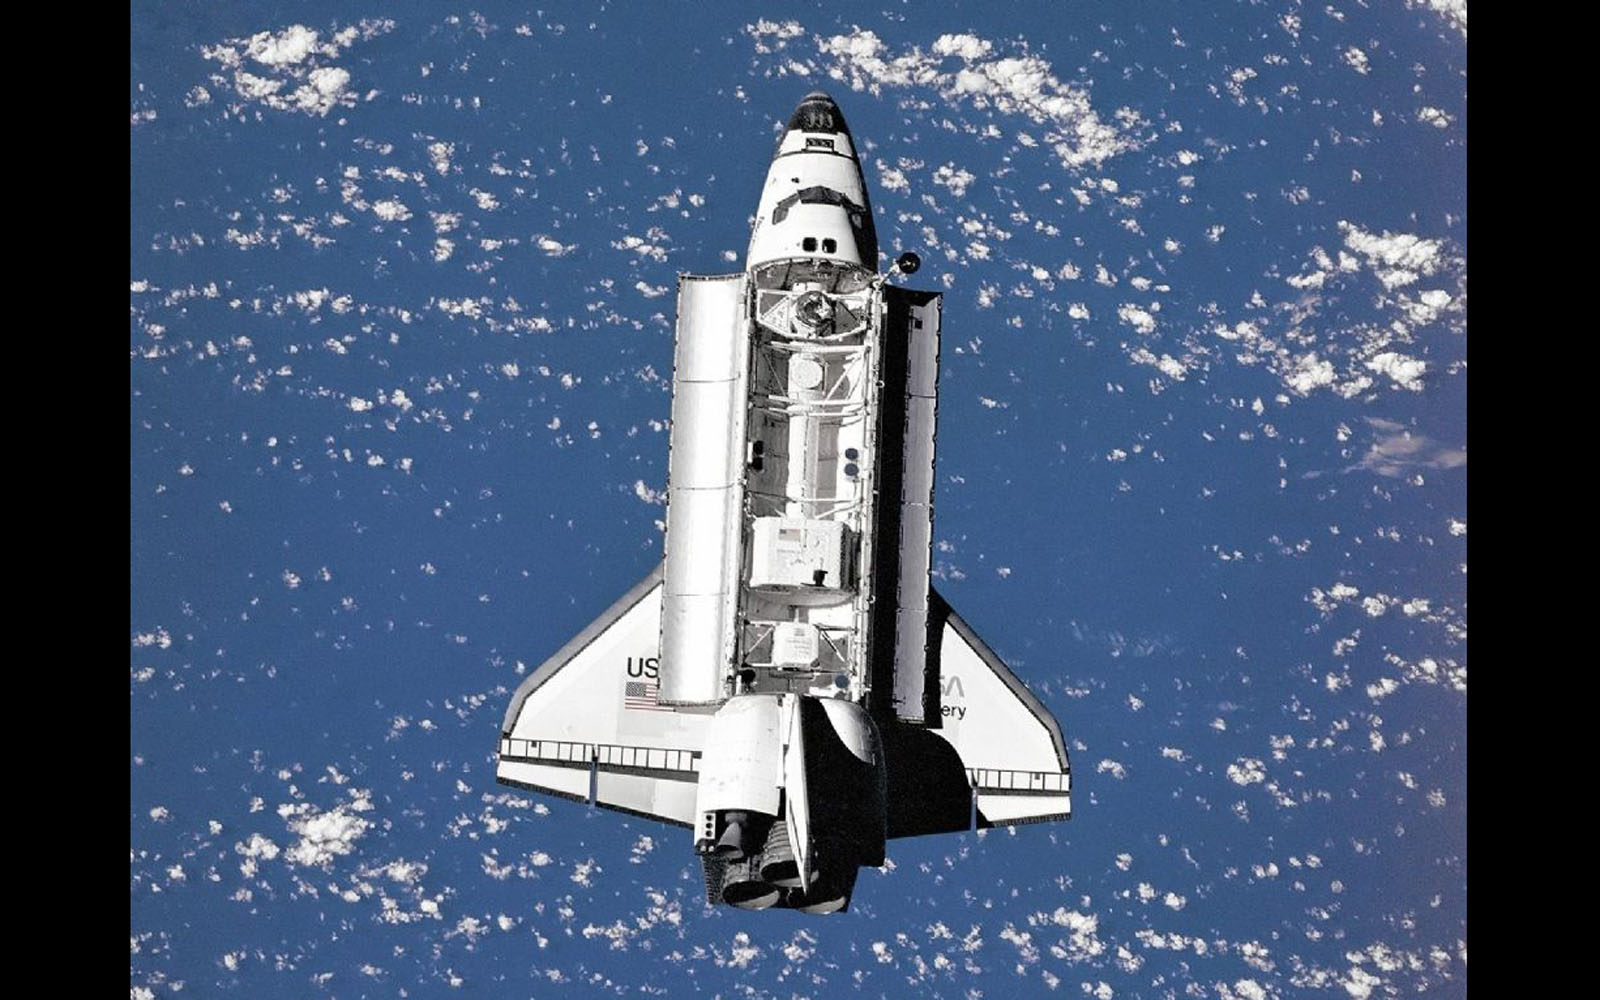 space shuttle discovery wallpaper - photo #9